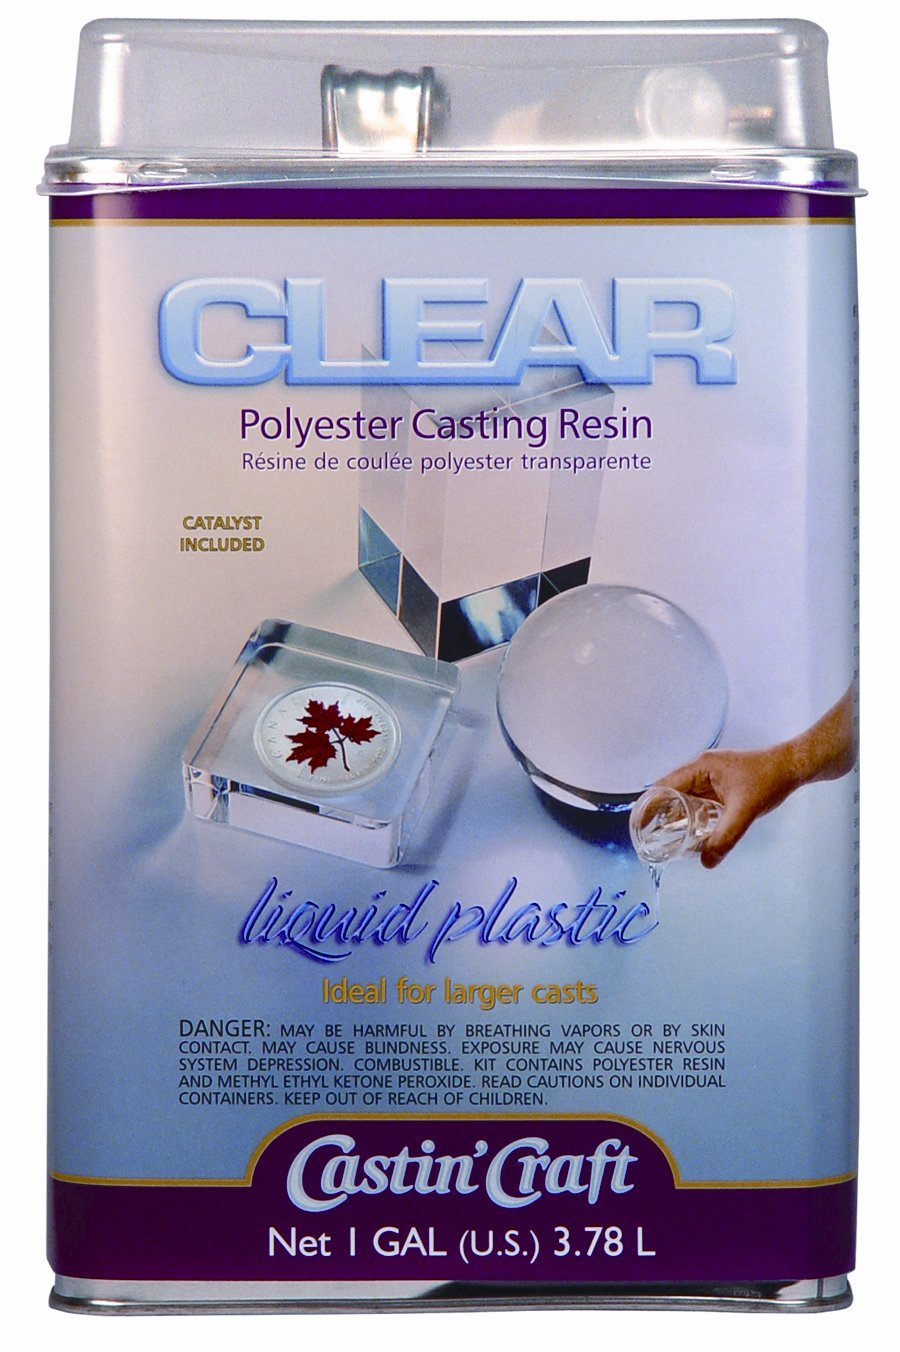 ET's Polyester Casting Resin Liquid Plastic Review | Clear